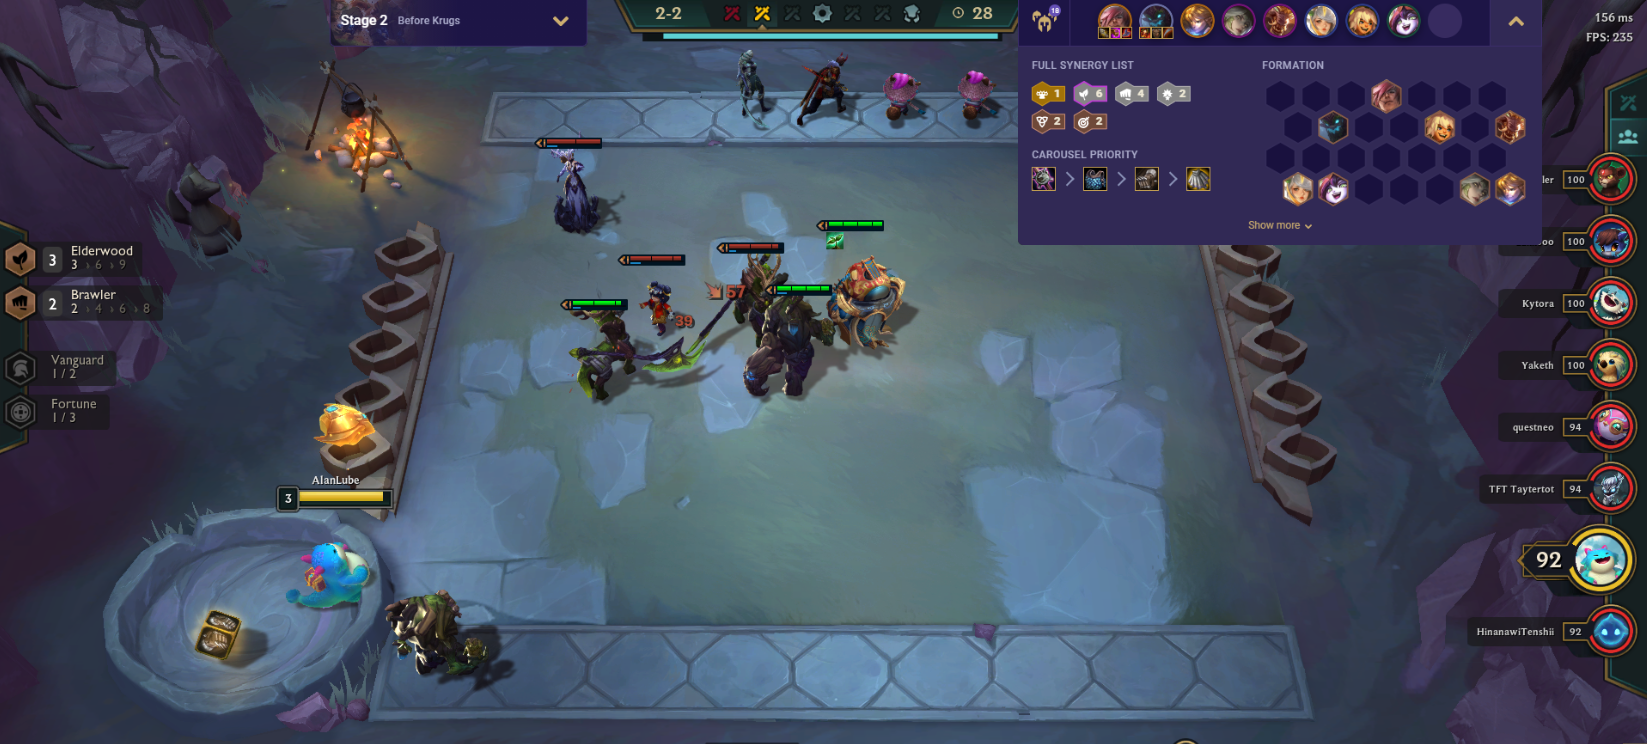 TFT My Comps overlay demonstration